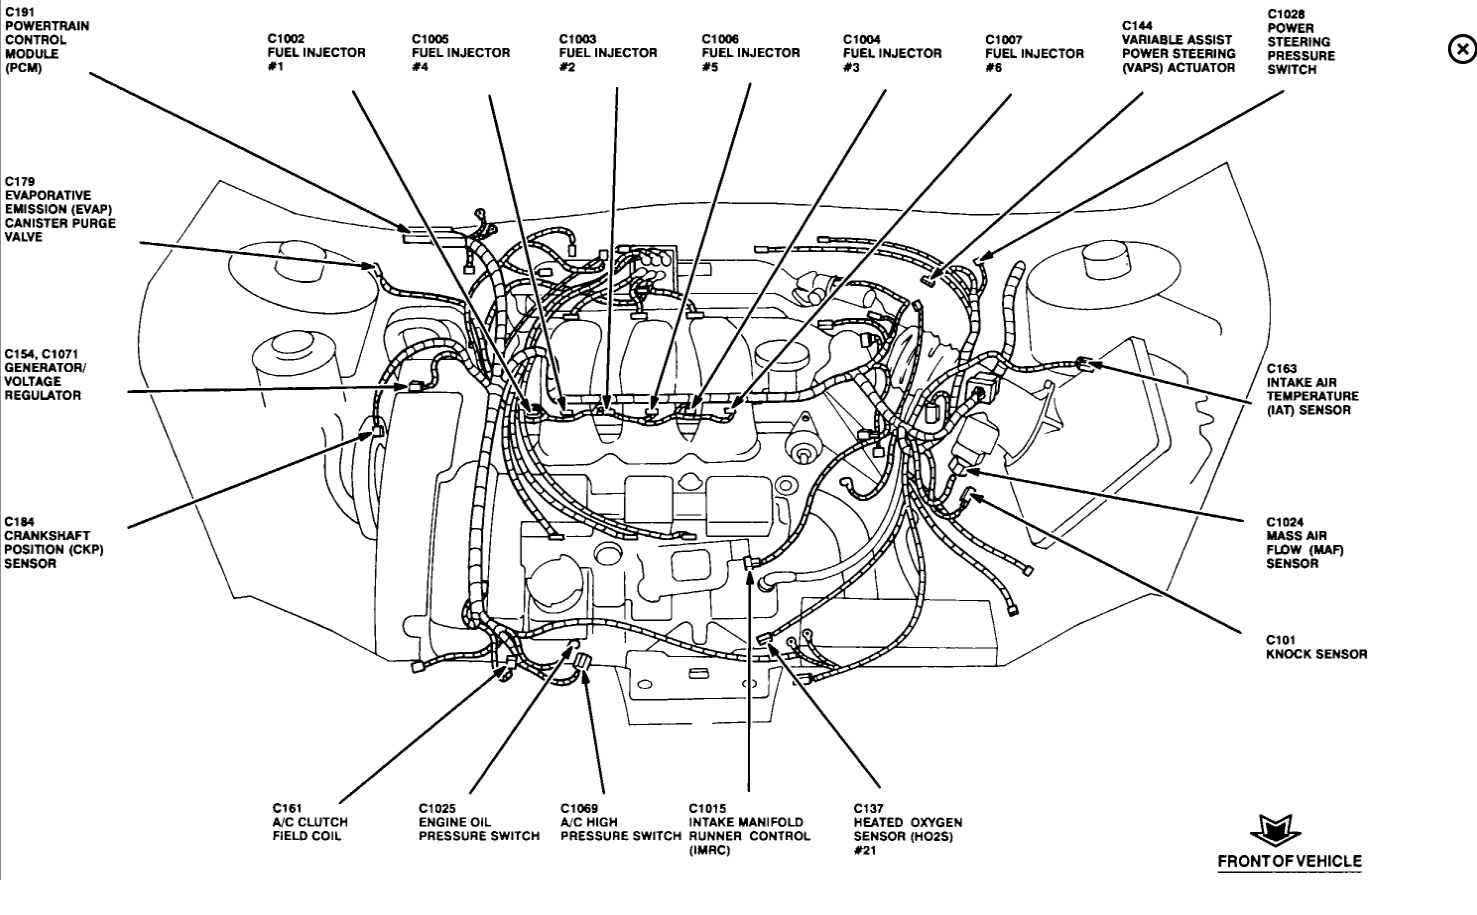 1948 chrysler new yorker wiring diagram  chrysler  auto